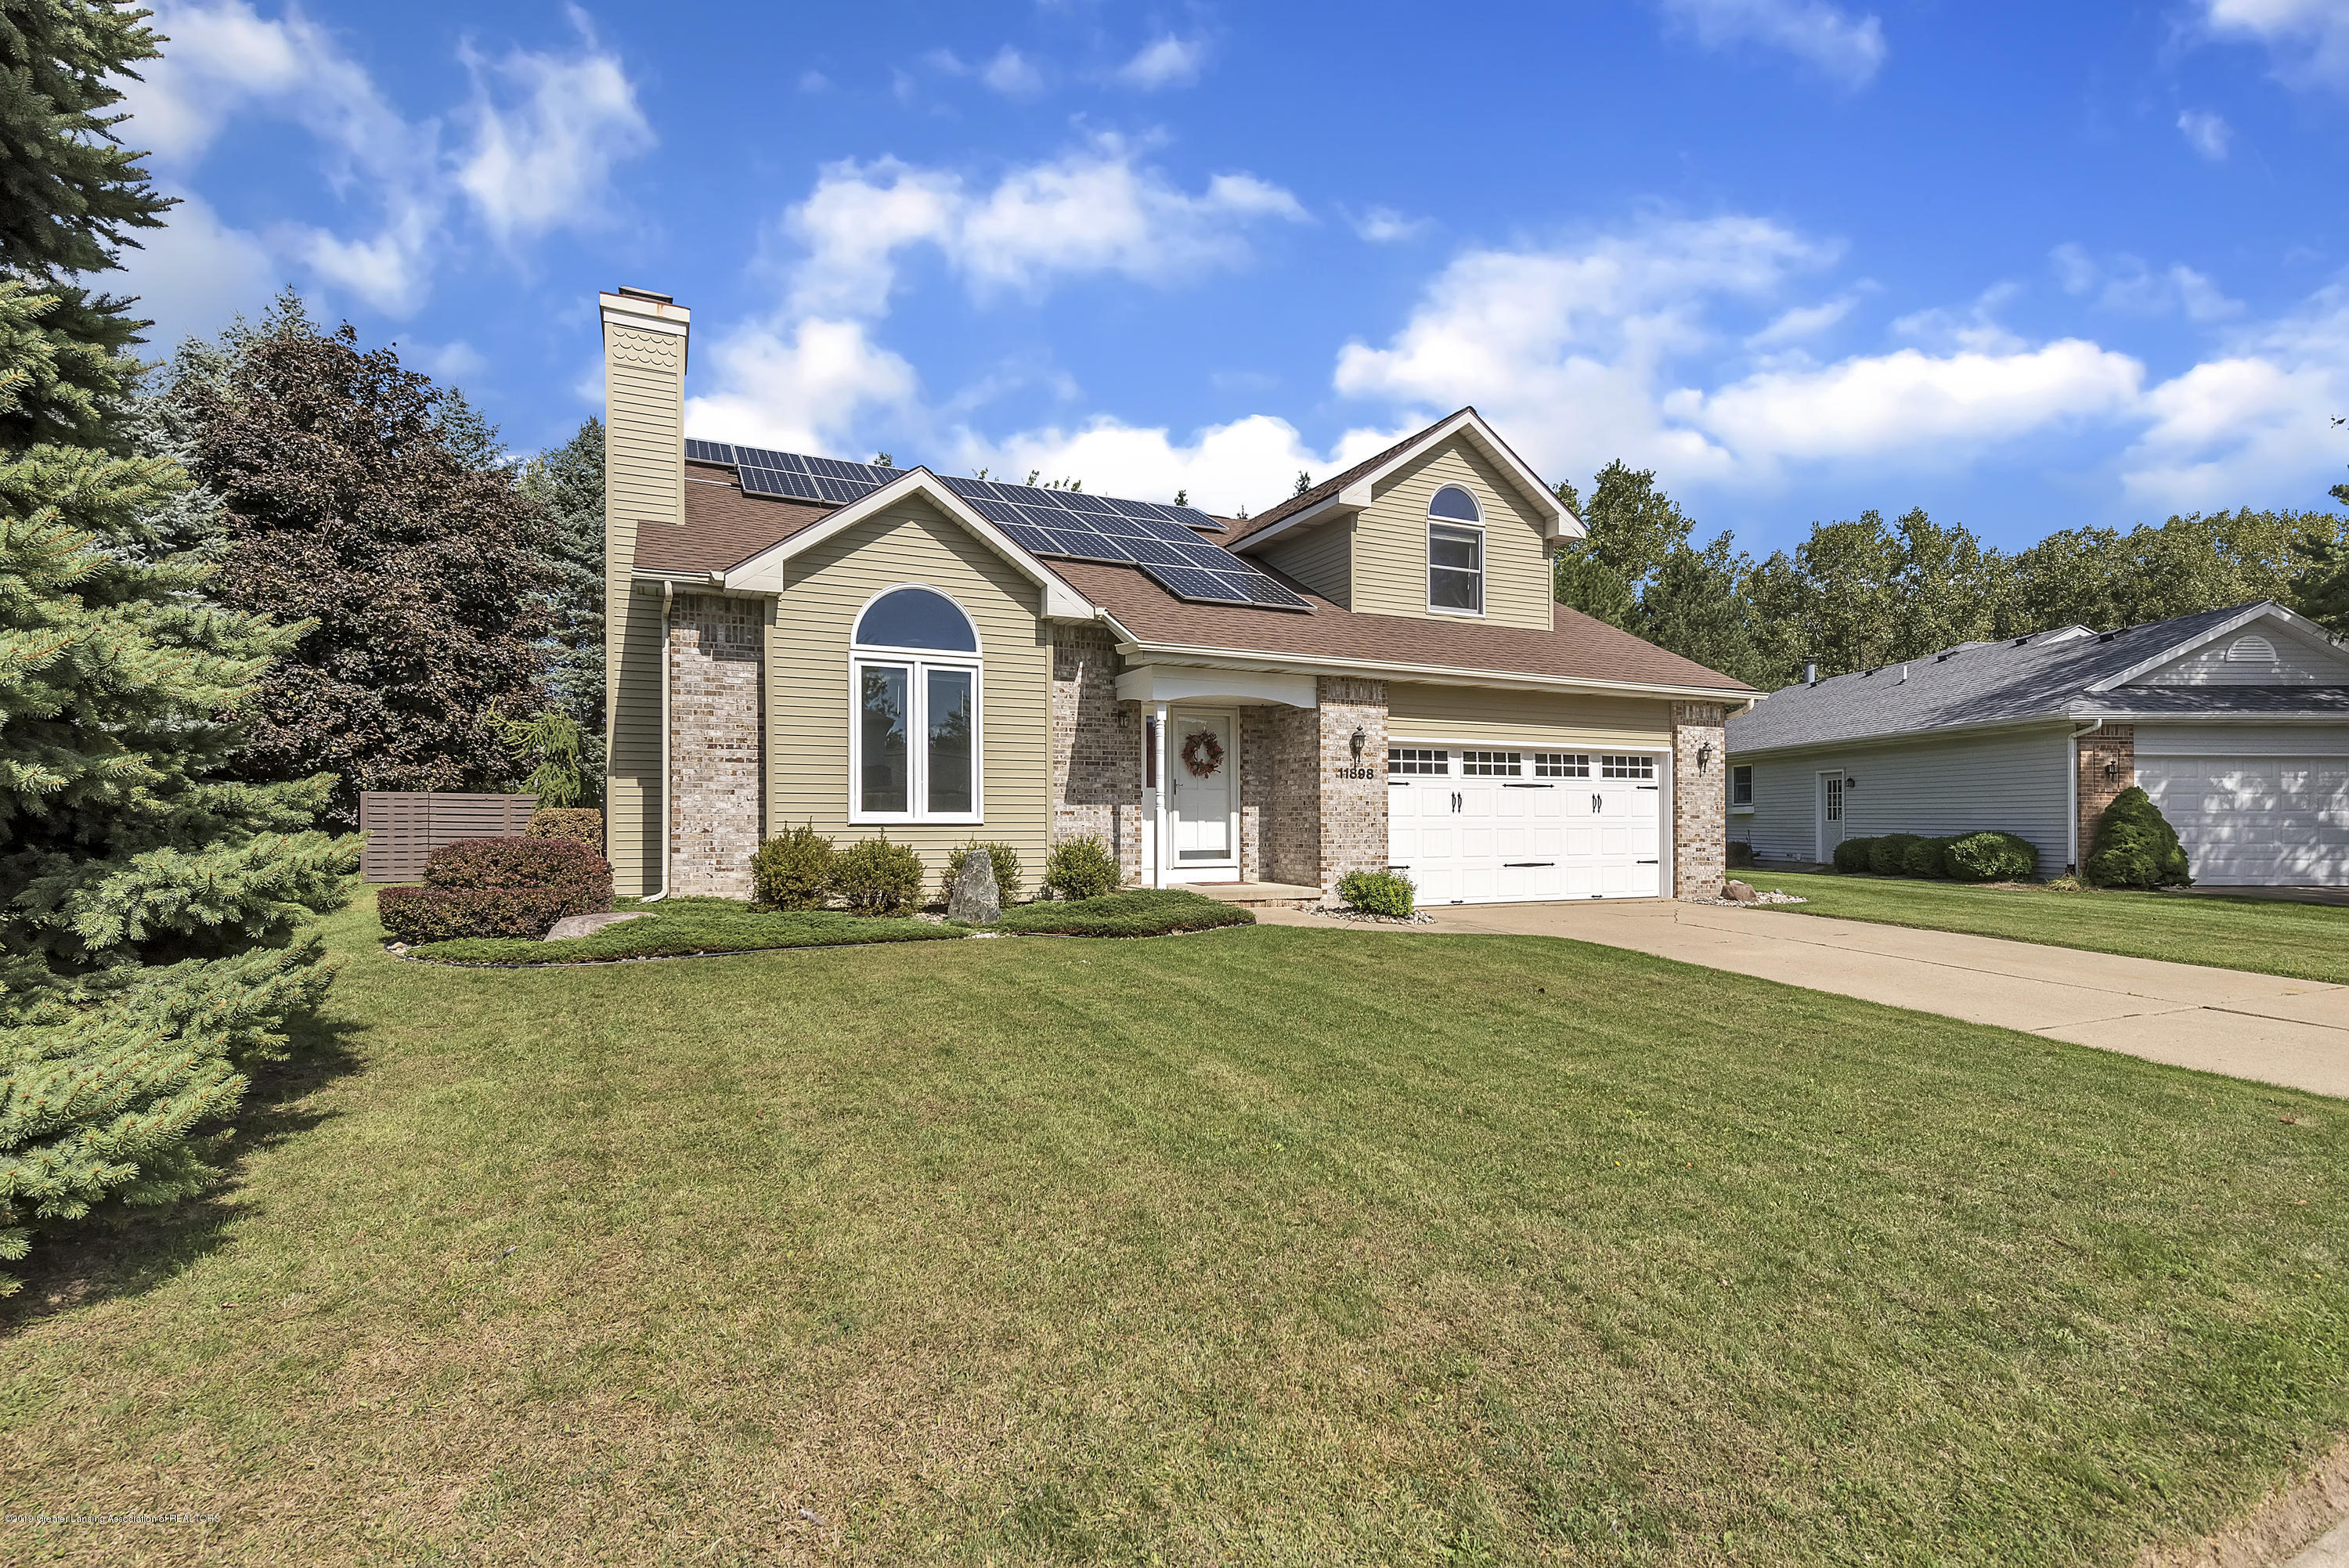 11898 Woodspointe Dr - 11898-Woodspointe-Drive-Grand-Ledge-wind - 1